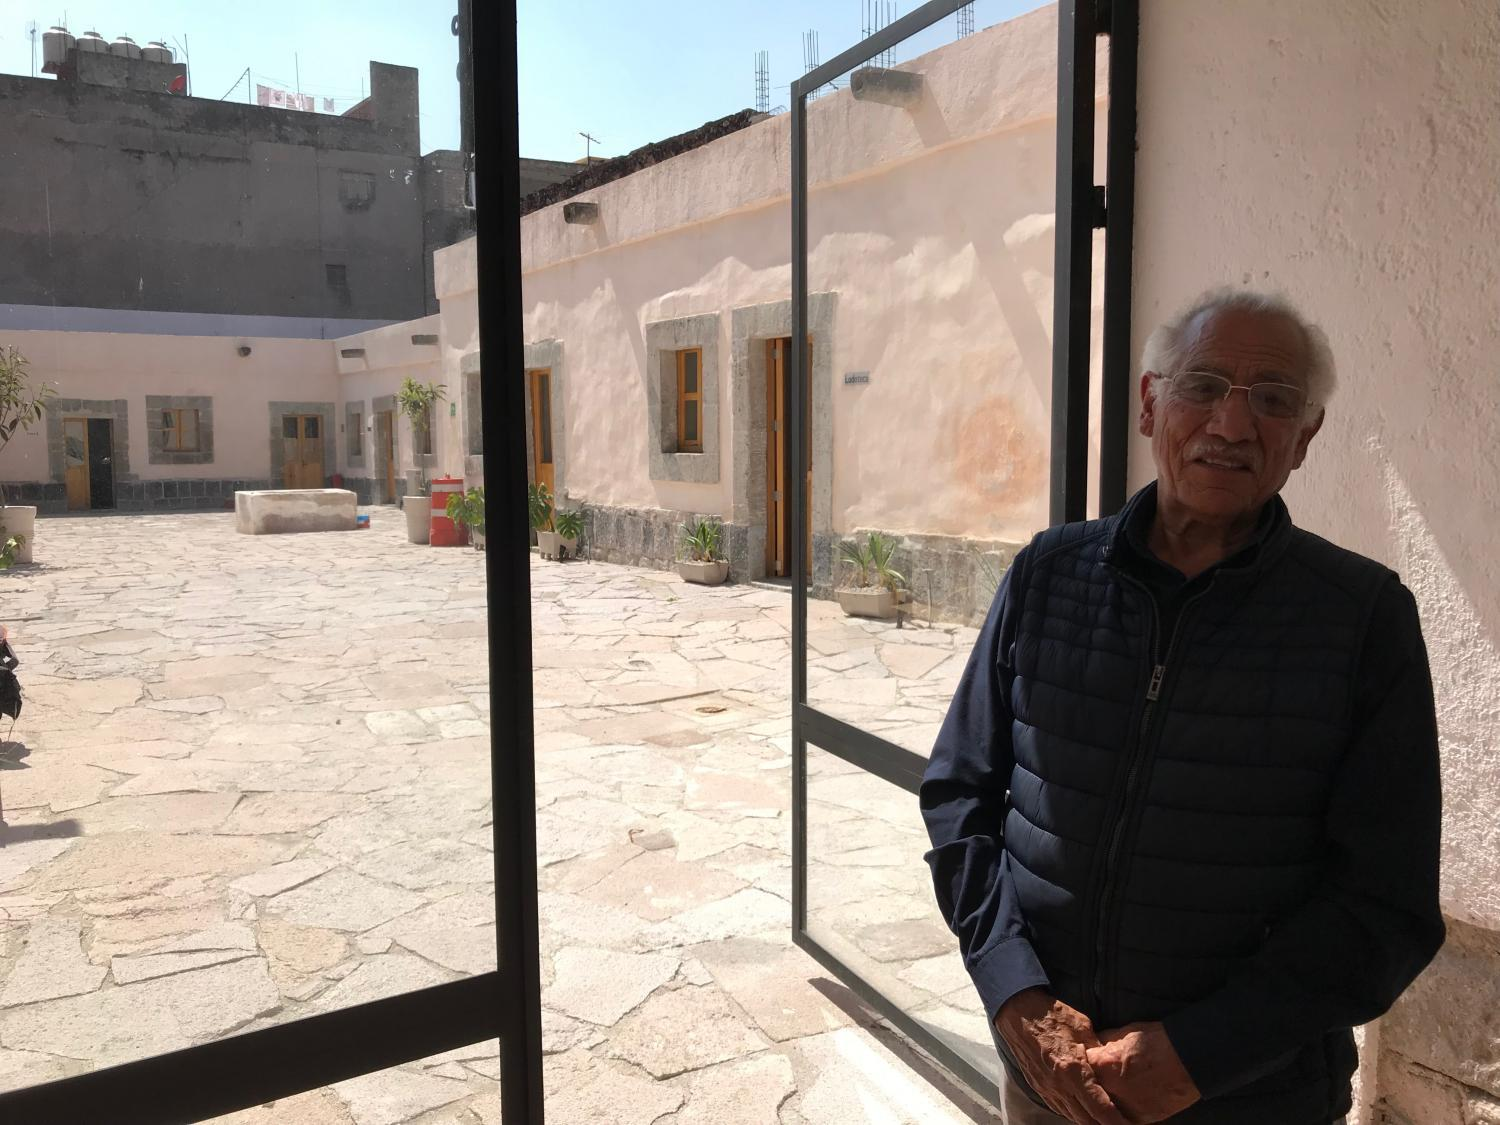 Florentino Canales Vargas, 80, was born in a room where he grew up on Manzanares 25.